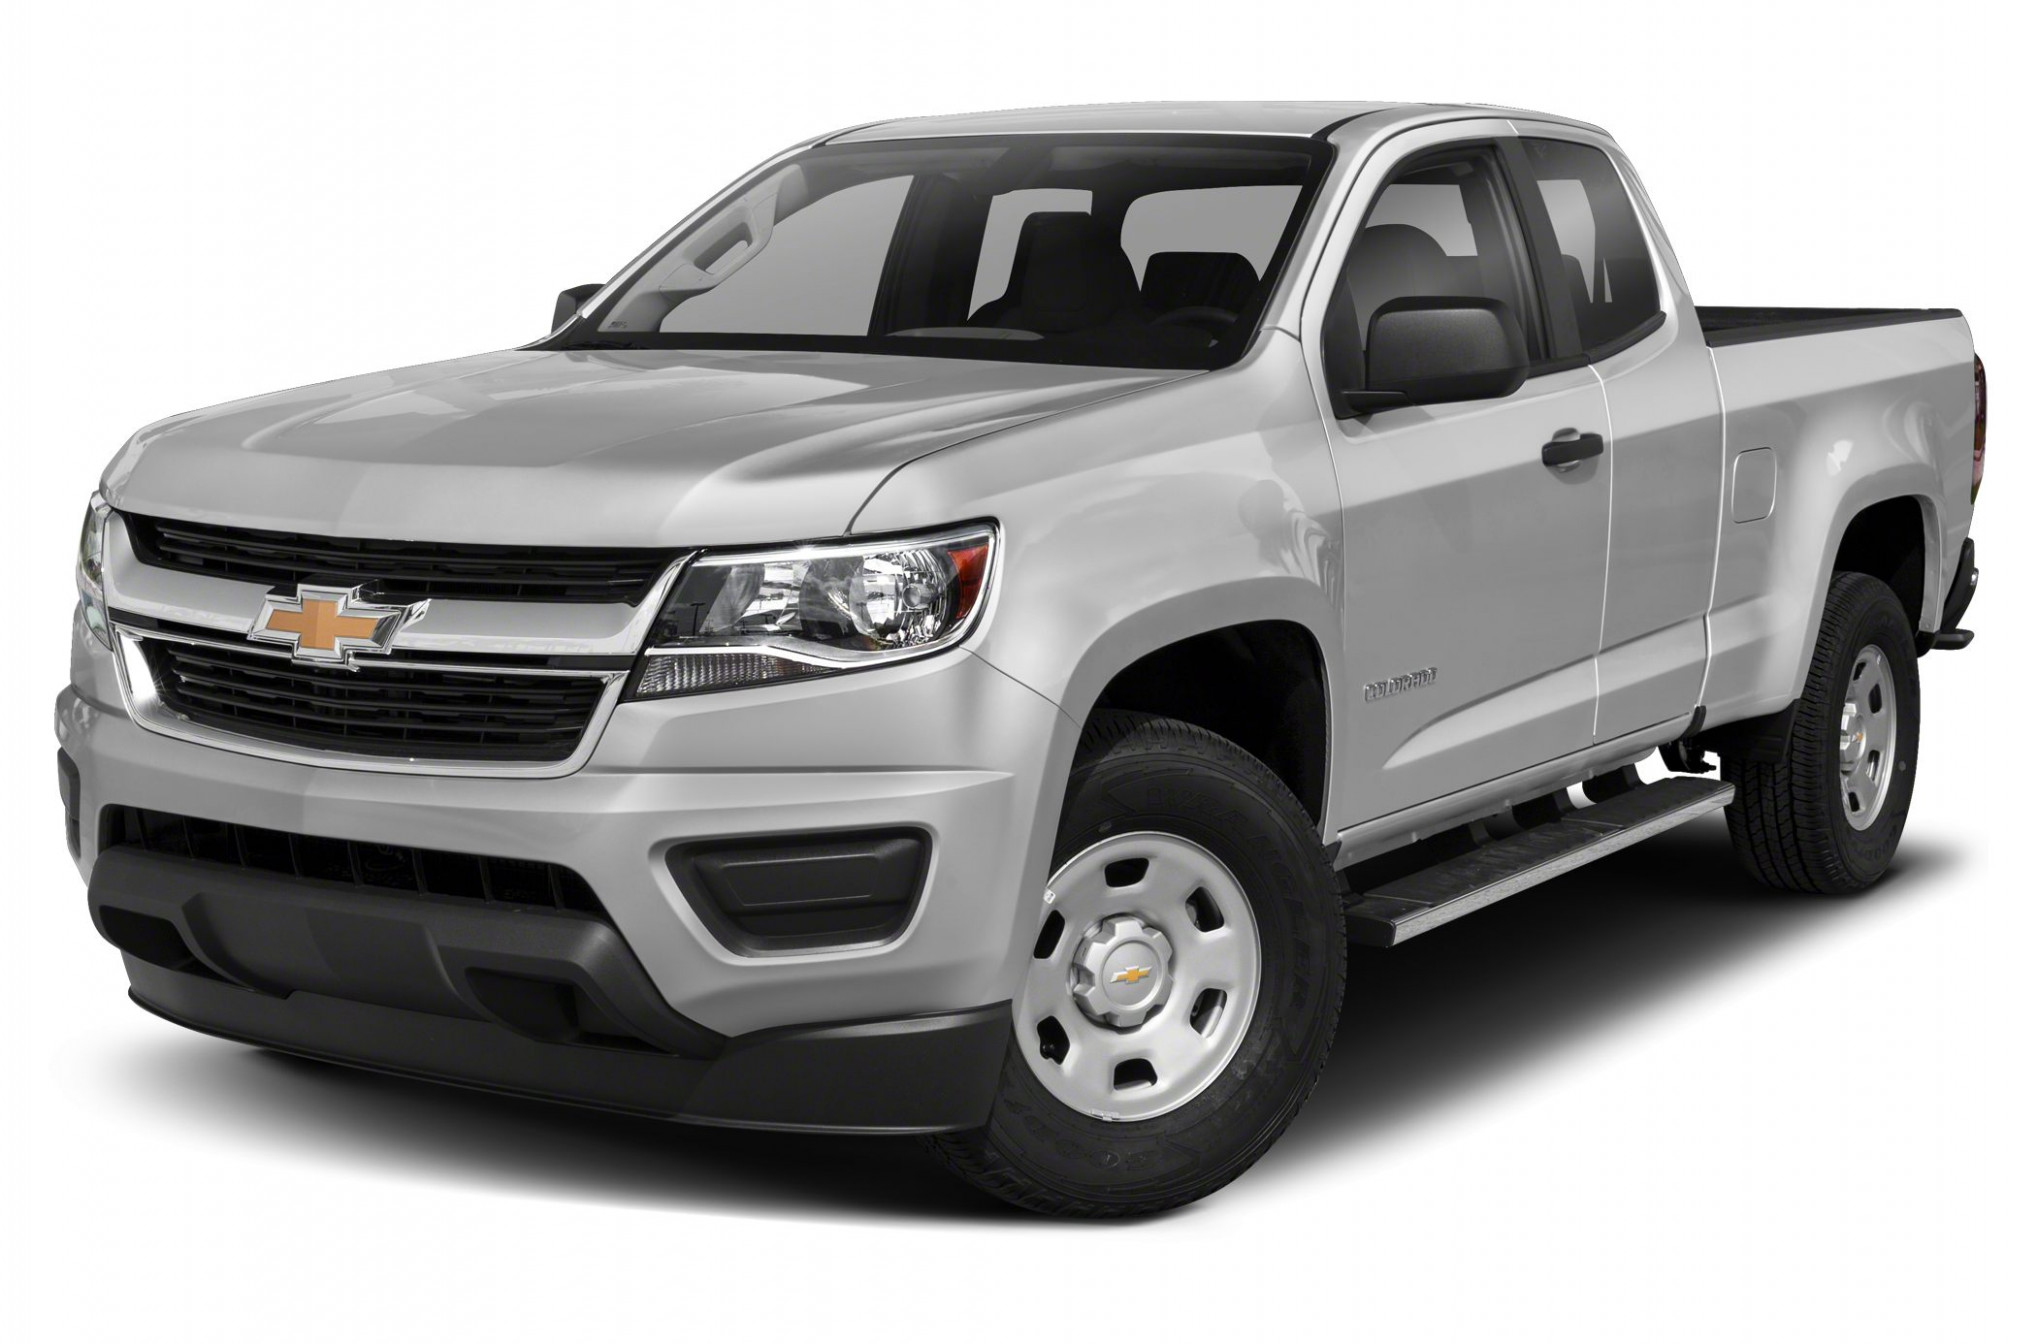 8 Chevrolet Colorado WT 8x8 Extended Cab 8 ft. box 8.8 in